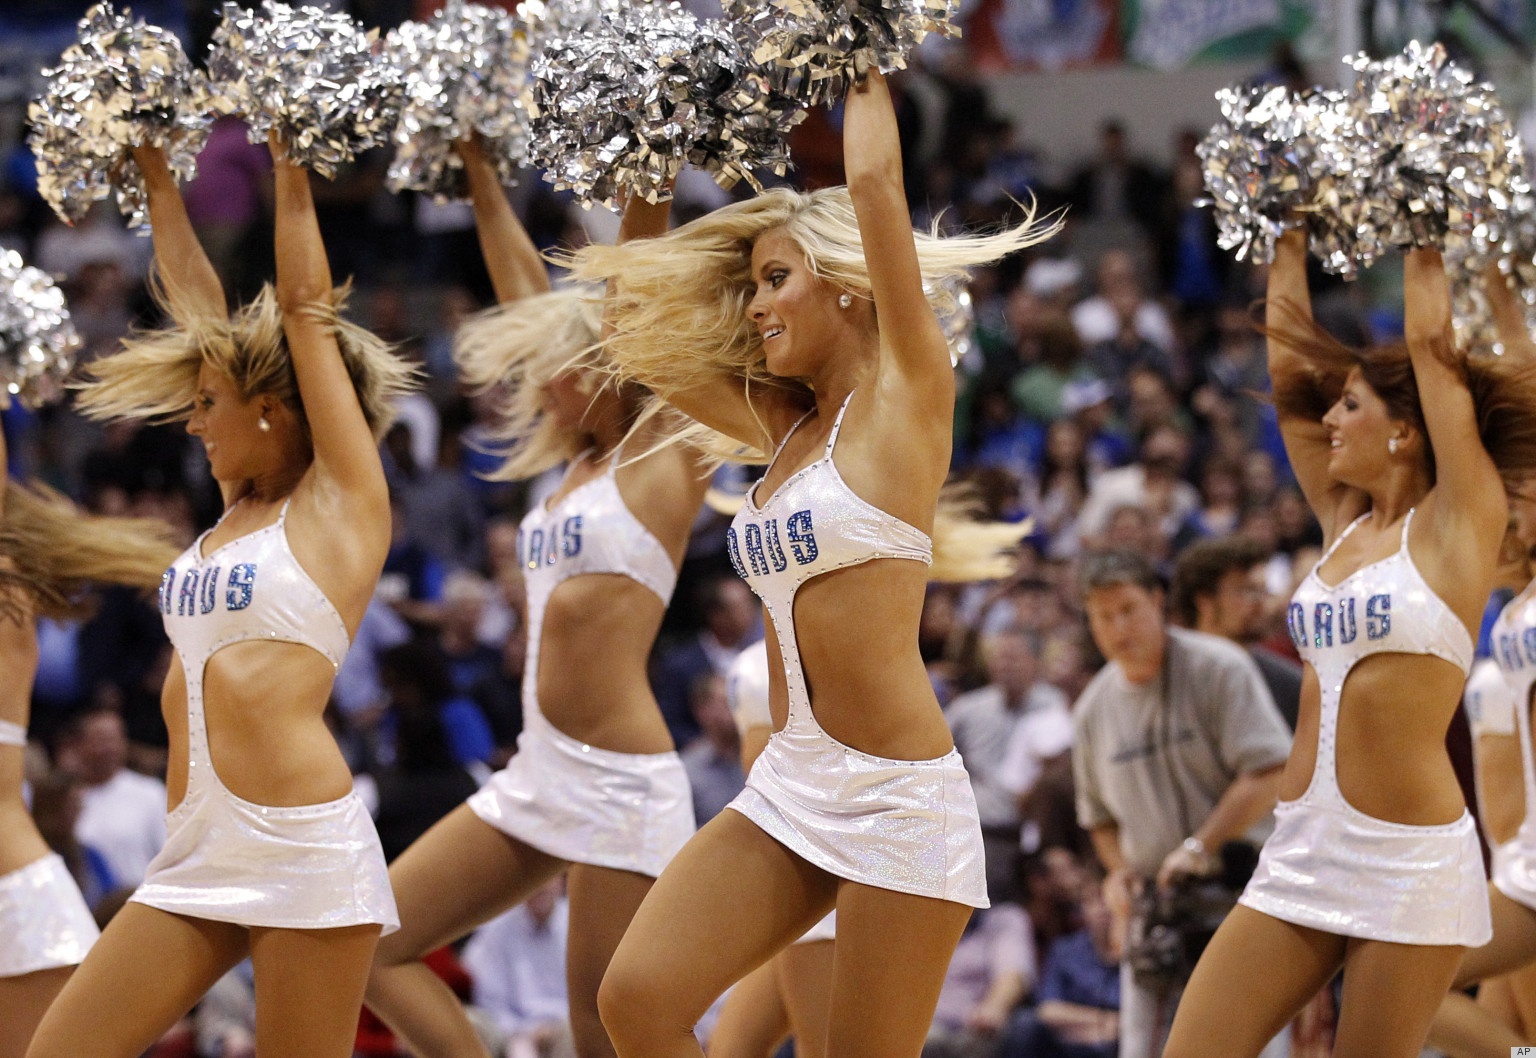 dallas mavericks dancers get sexy new uniforms, are now practically